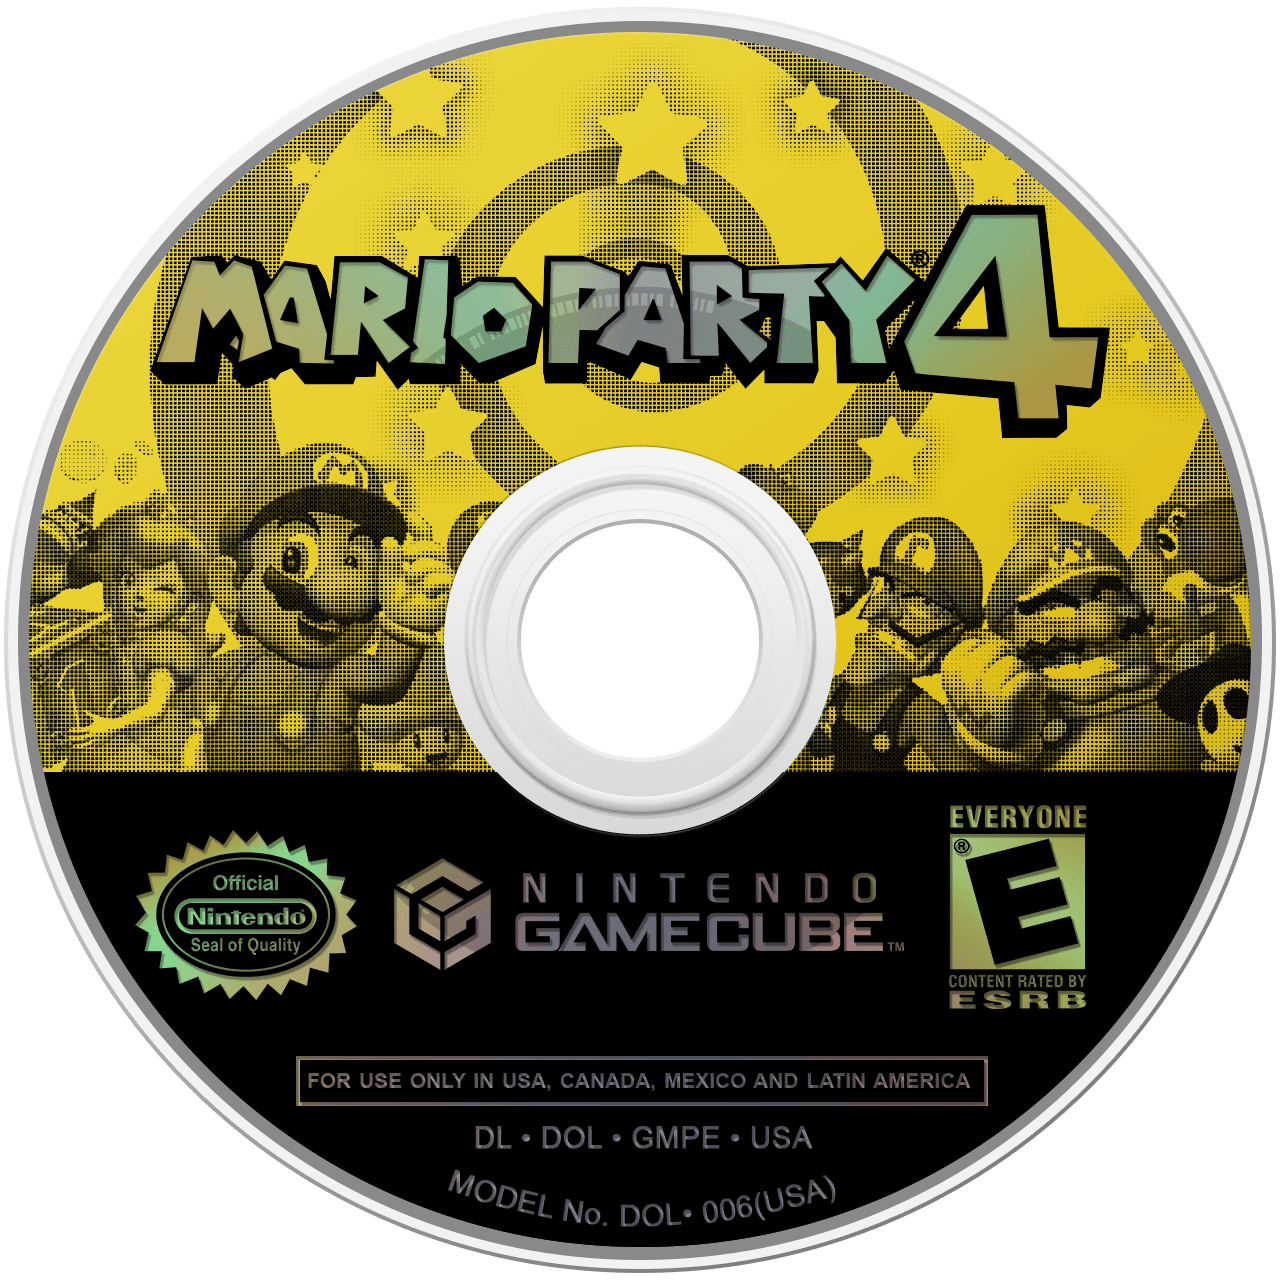 Birthday Party Background Mario Party 4 Details - Launchbox Games Database